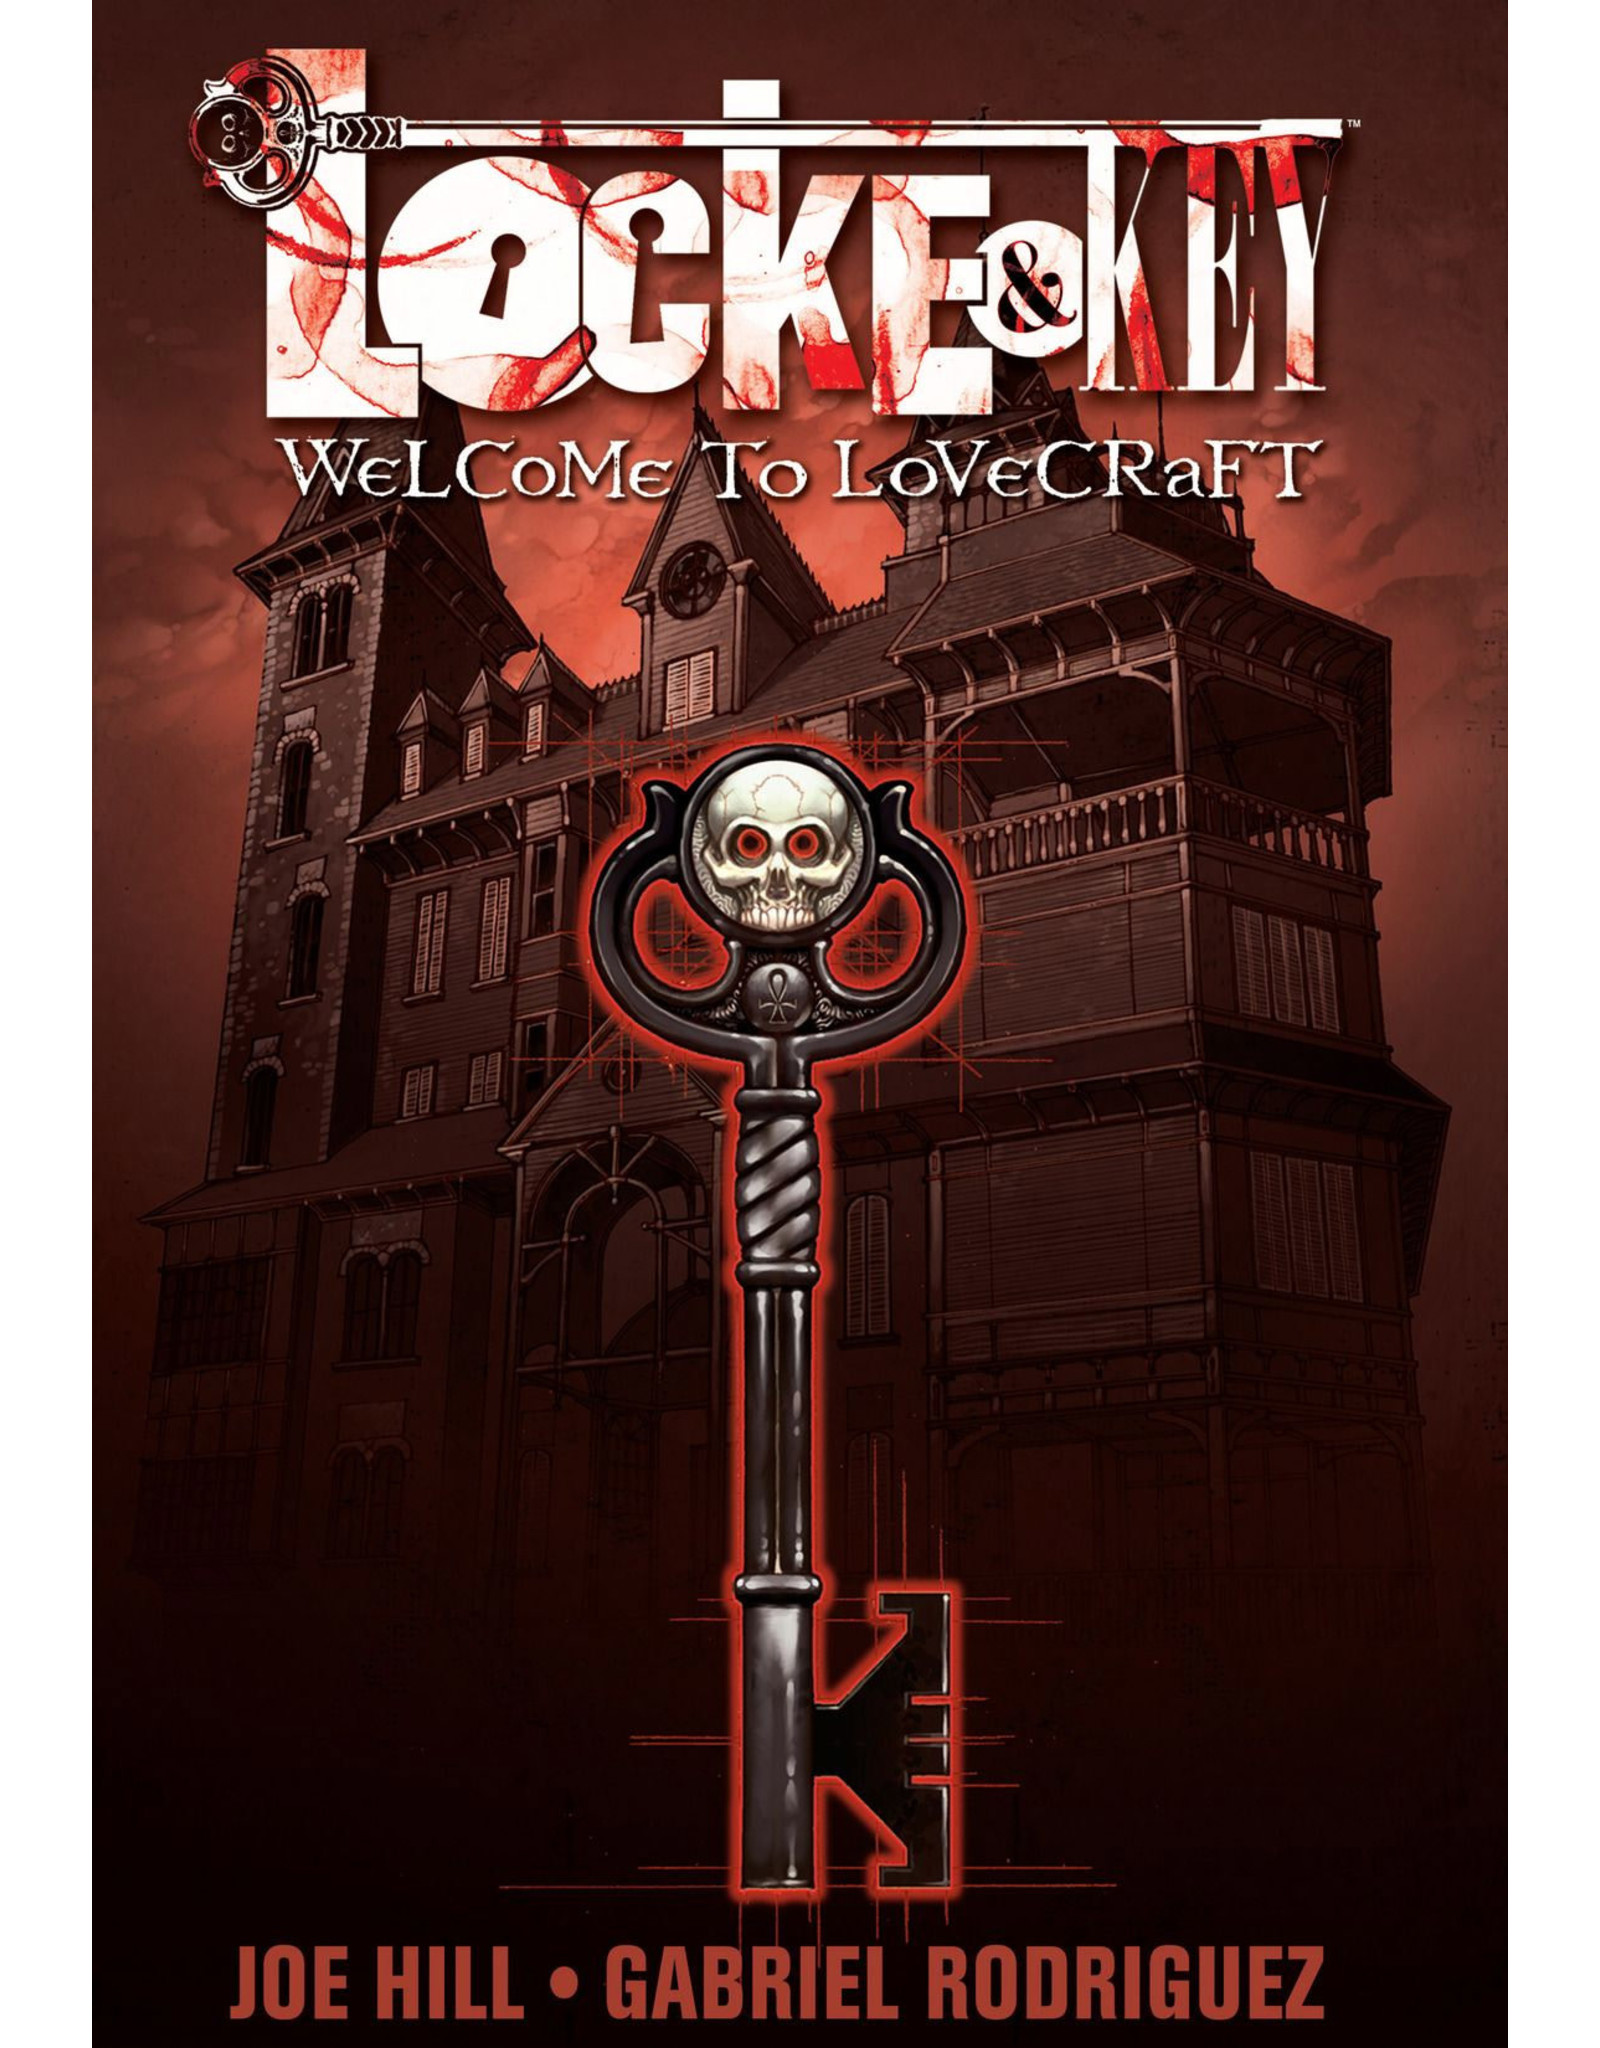 IDW PUBLISHING LOCKE & KEY TP VOL 01 WELCOME TO LOVECRAFT